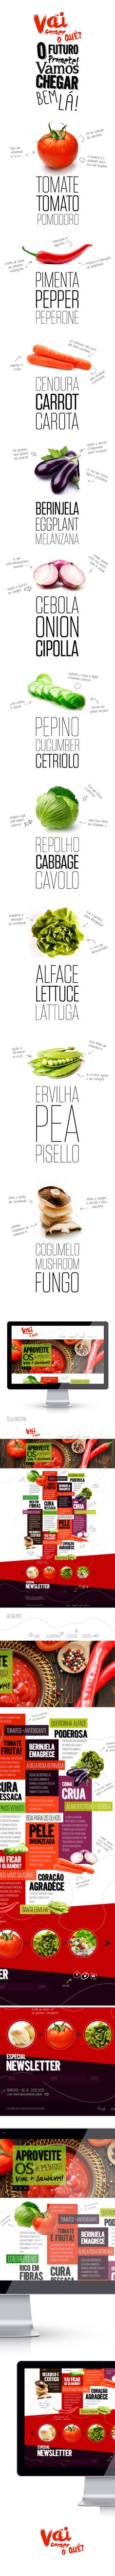 Vai comer oquê? // Hi Friends, look what I have just discovered on #webDesign! Feel free to follow us @moirestudiosjkt to see more excellent pins like this. | If you need help for designing your own website, we love to help you make one.